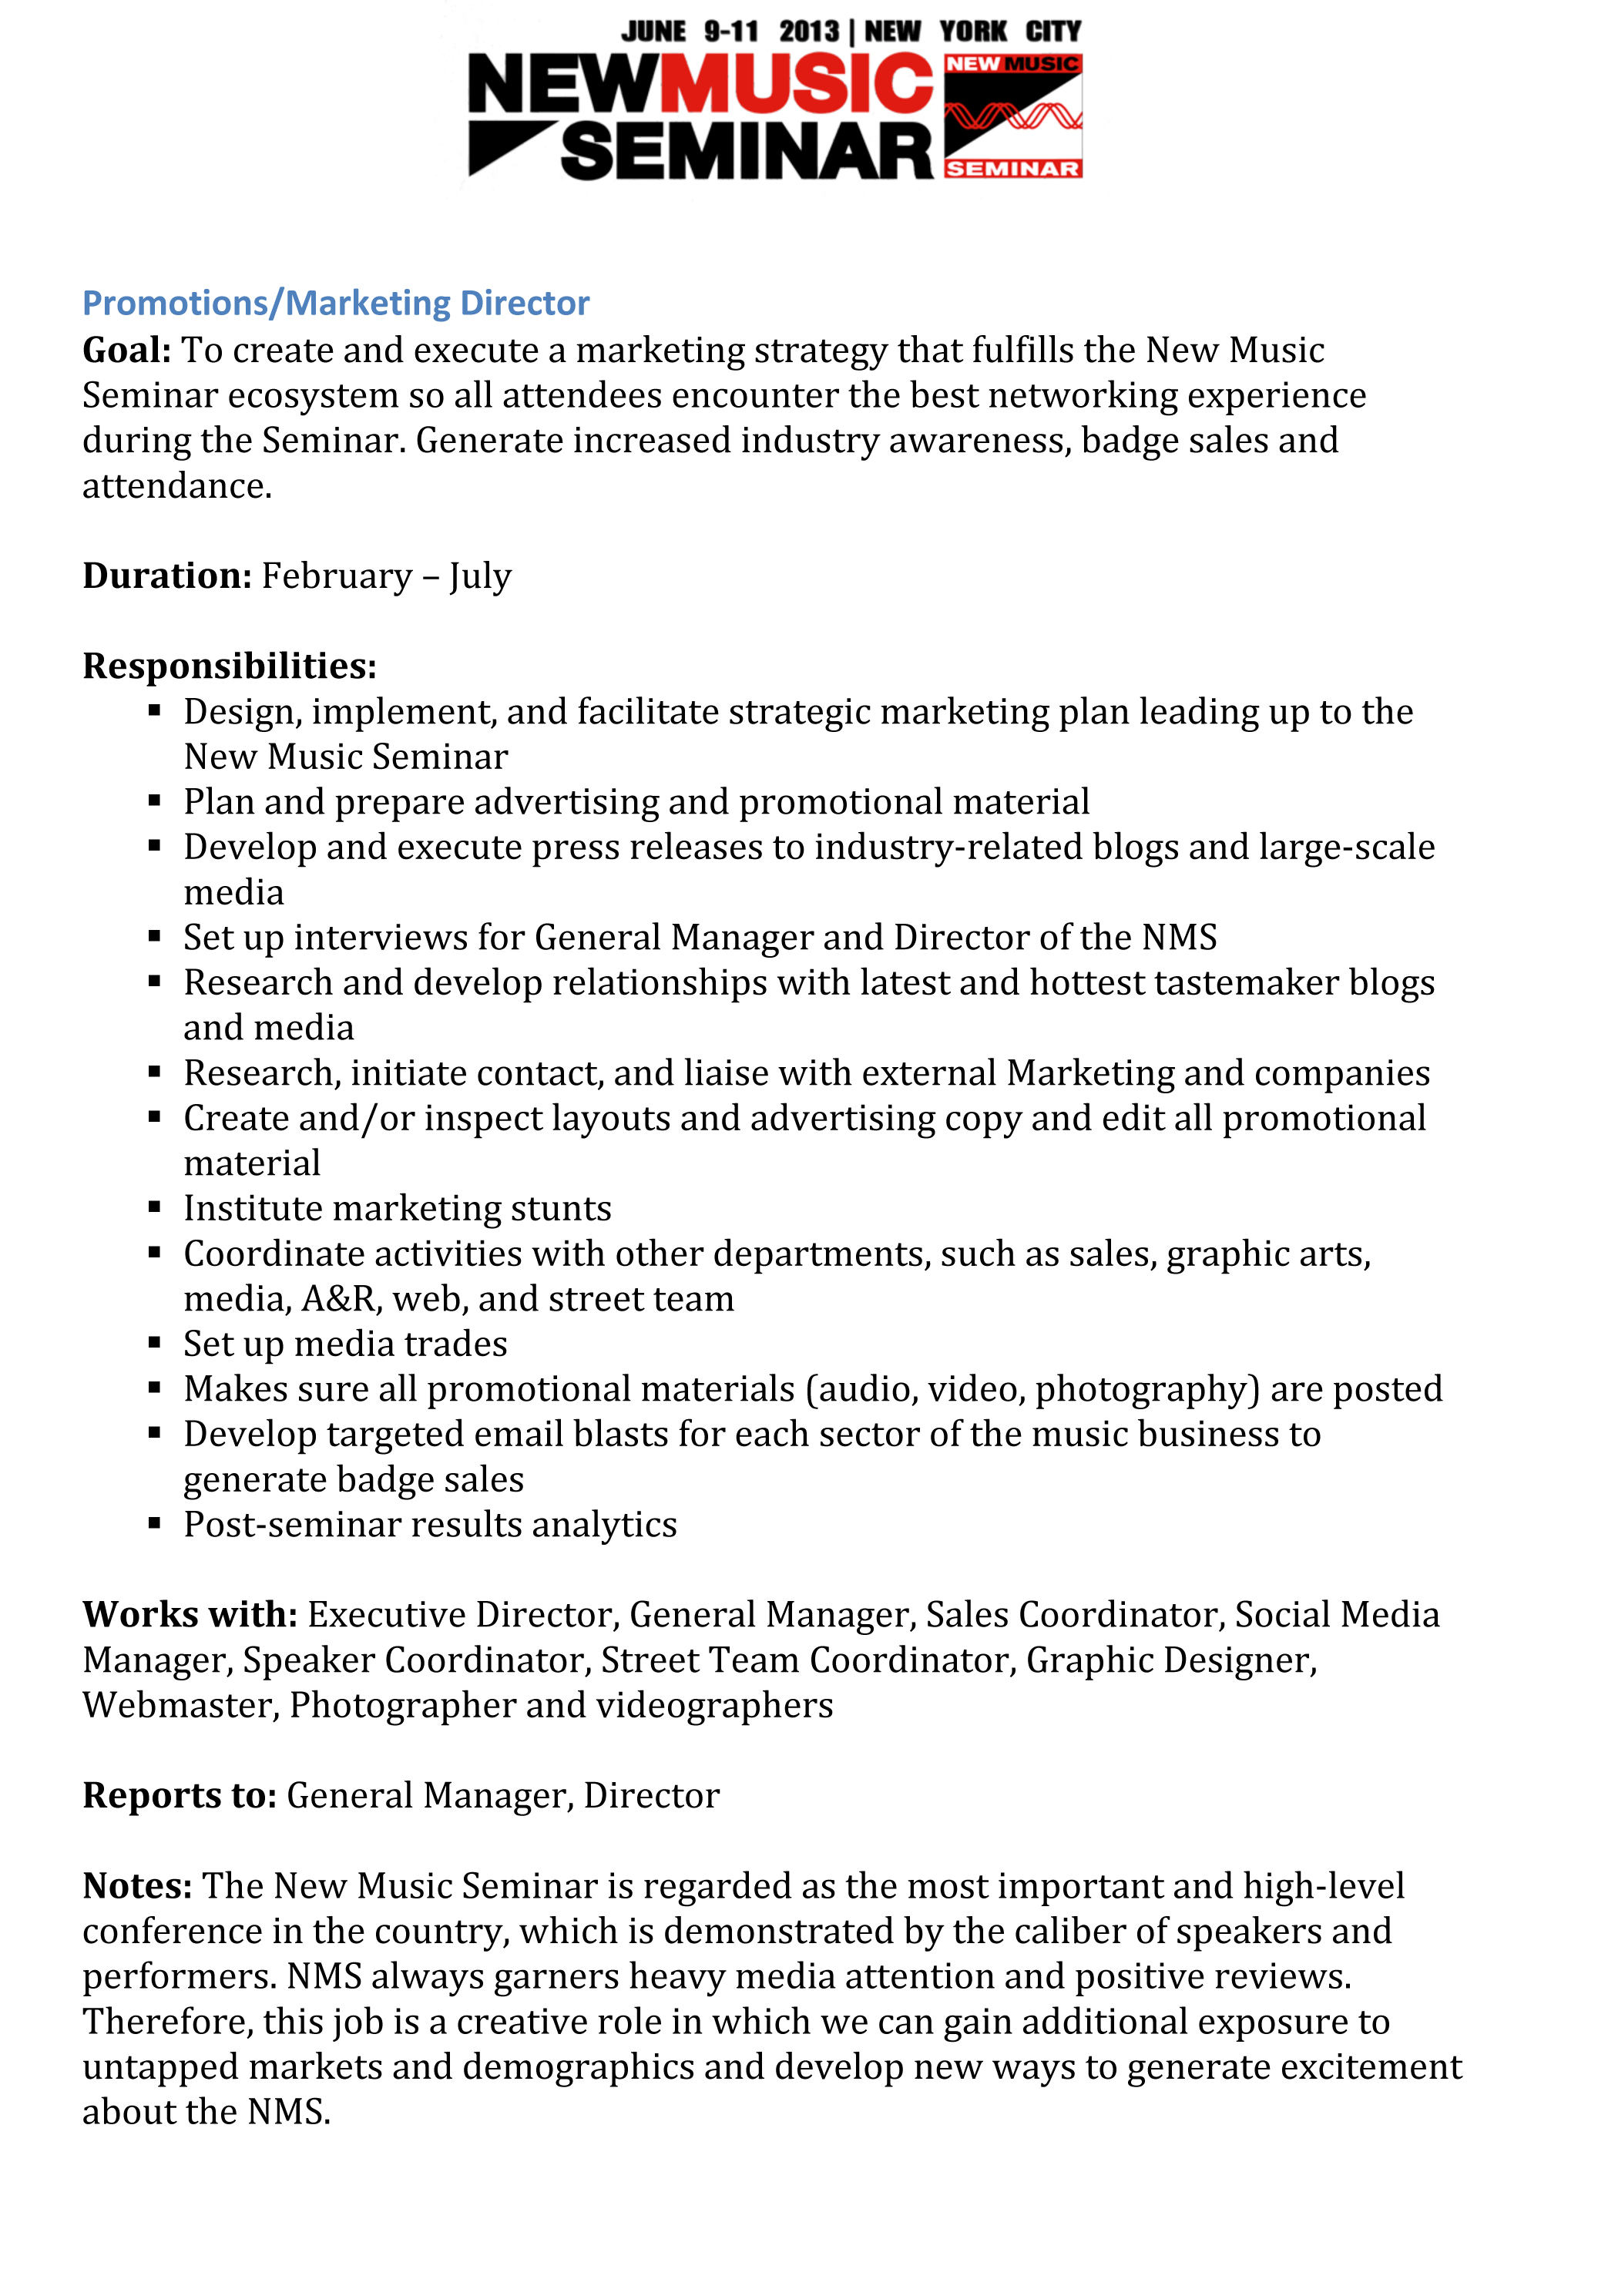 Marketing The Music Business Network – Photographer Job Description